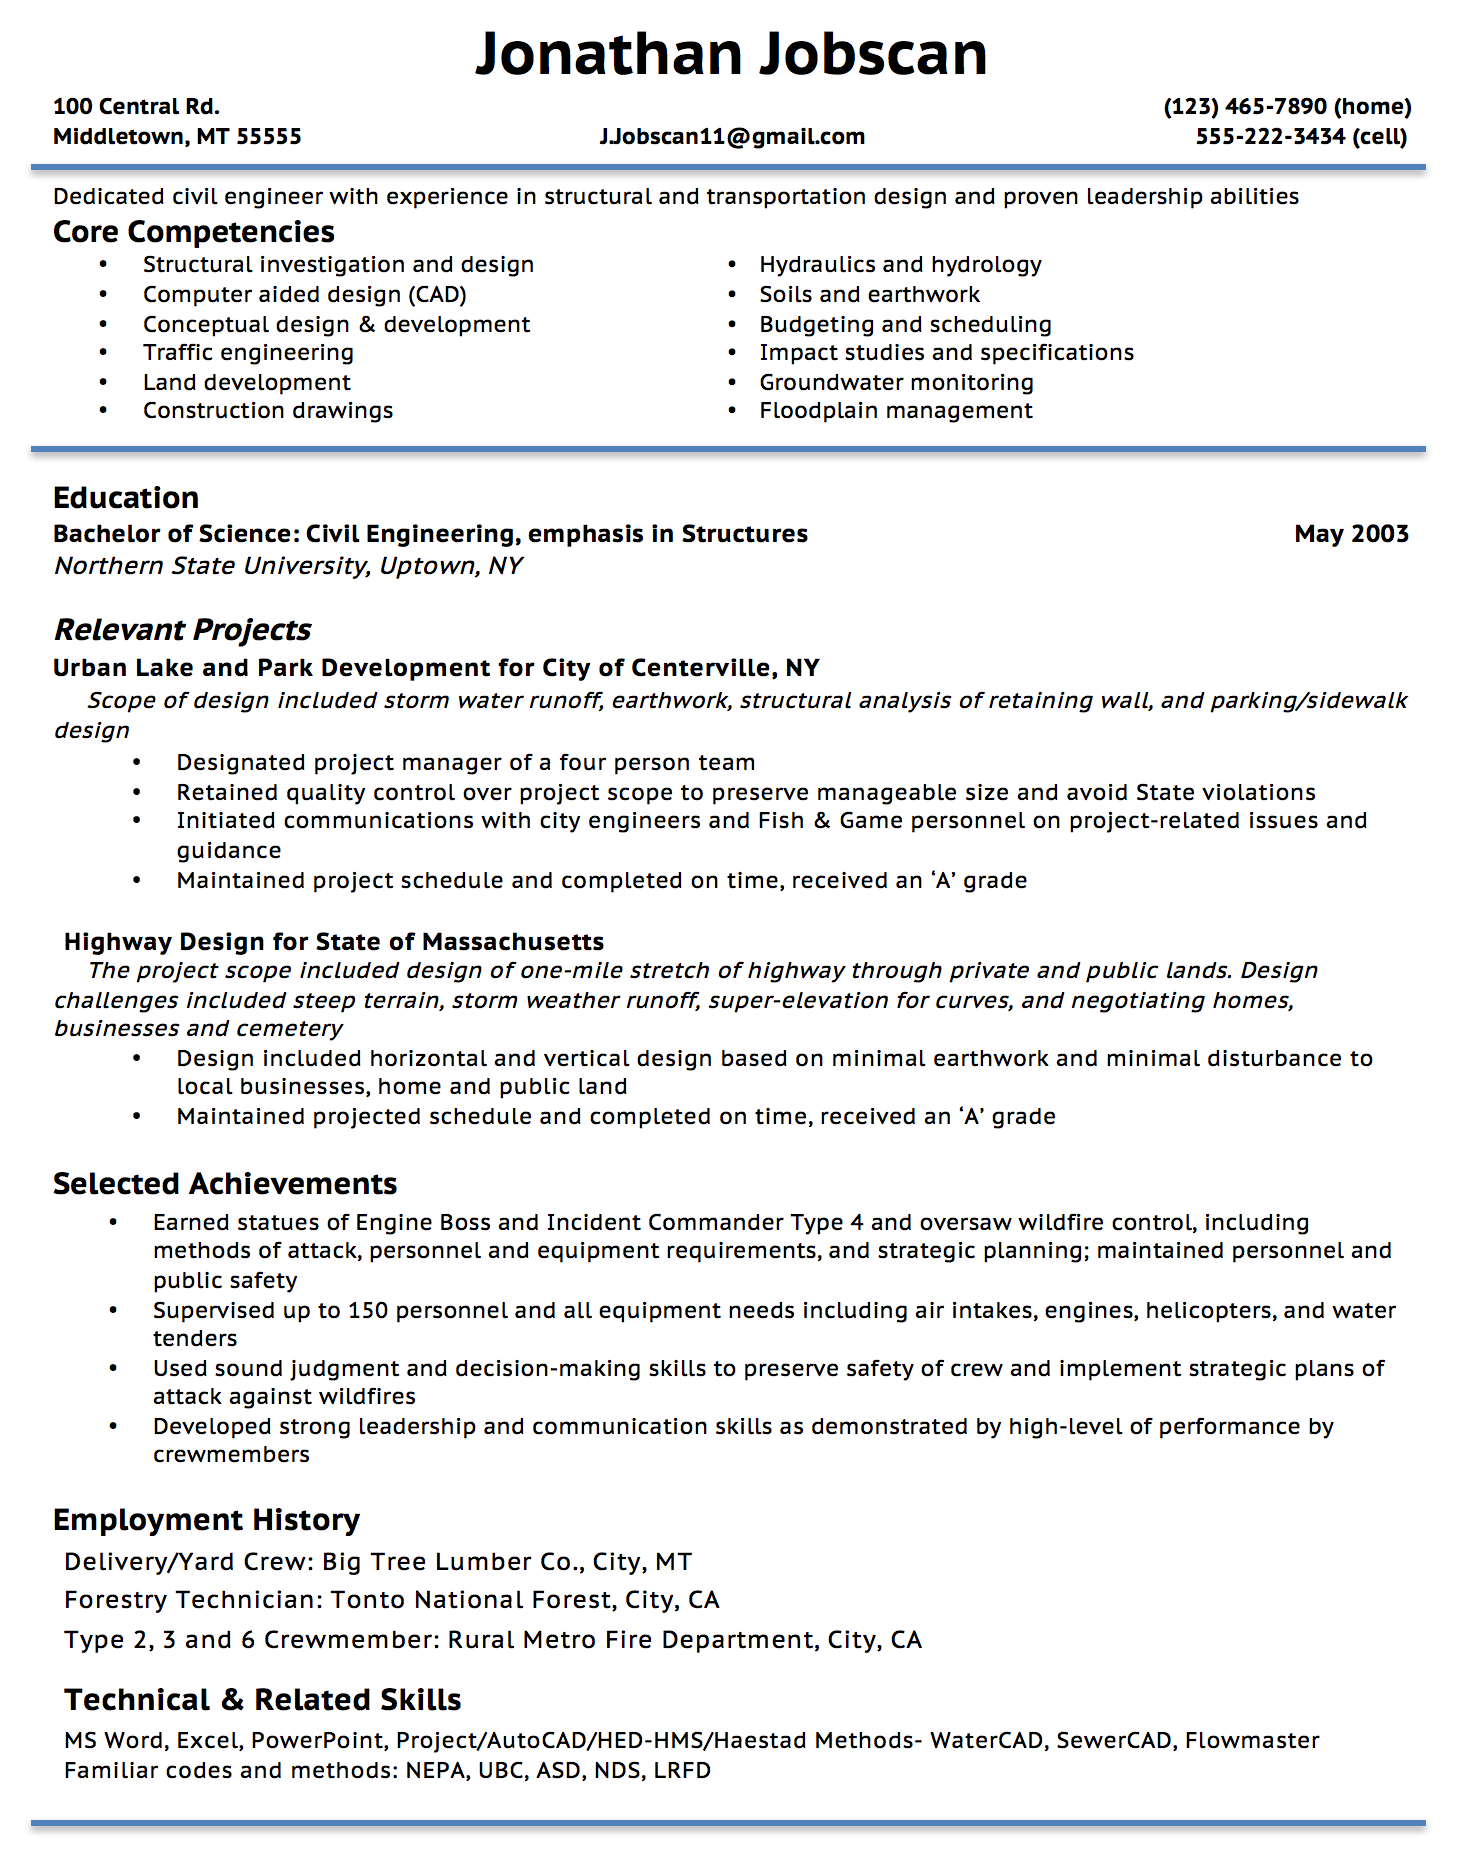 Picnictoimpeachus  Stunning Resume Writing Guide  Jobscan With Marvelous Example Of A Functional Resume Format With Endearing Build Your Resume Free Also References Upon Request On Resume In Addition Sales Associate Skills Resume And Hostess Job Description Resume As Well As Sample Resume For First Job Additionally Free Resume Format Download From Jobscanco With Picnictoimpeachus  Marvelous Resume Writing Guide  Jobscan With Endearing Example Of A Functional Resume Format And Stunning Build Your Resume Free Also References Upon Request On Resume In Addition Sales Associate Skills Resume From Jobscanco